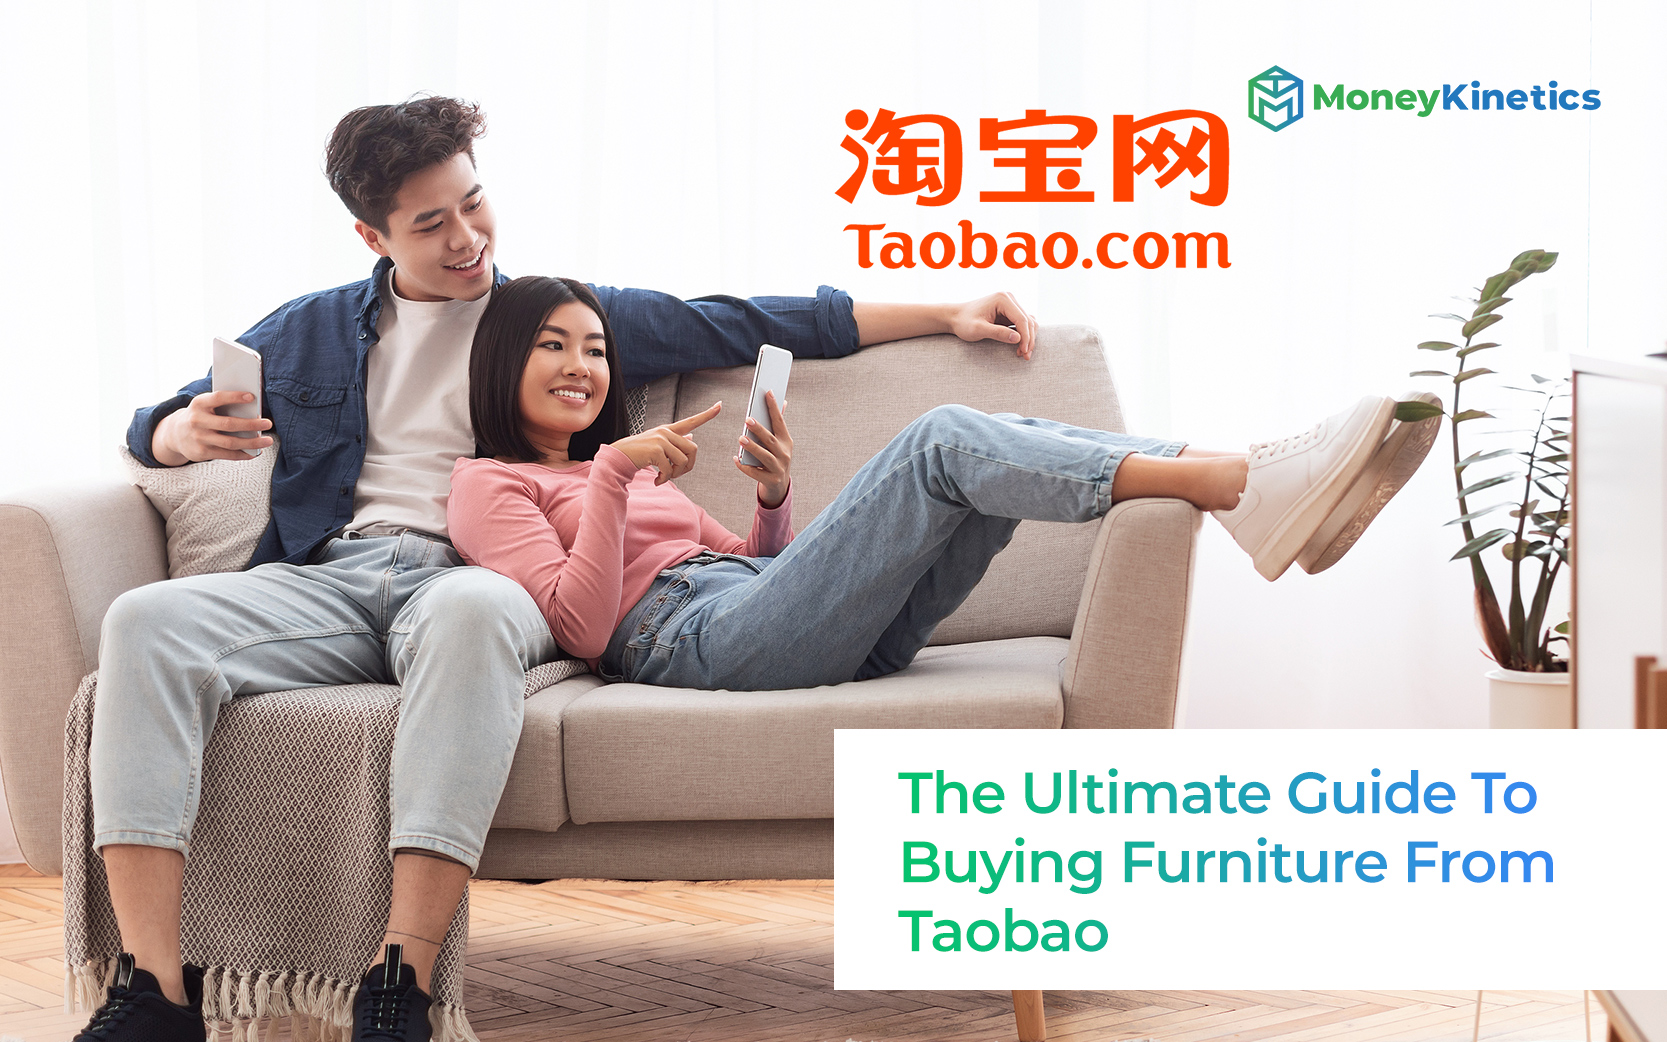 The-Ultimate-Guide-To-Buying-Furniture-From-Taobao-Money-Kinetics